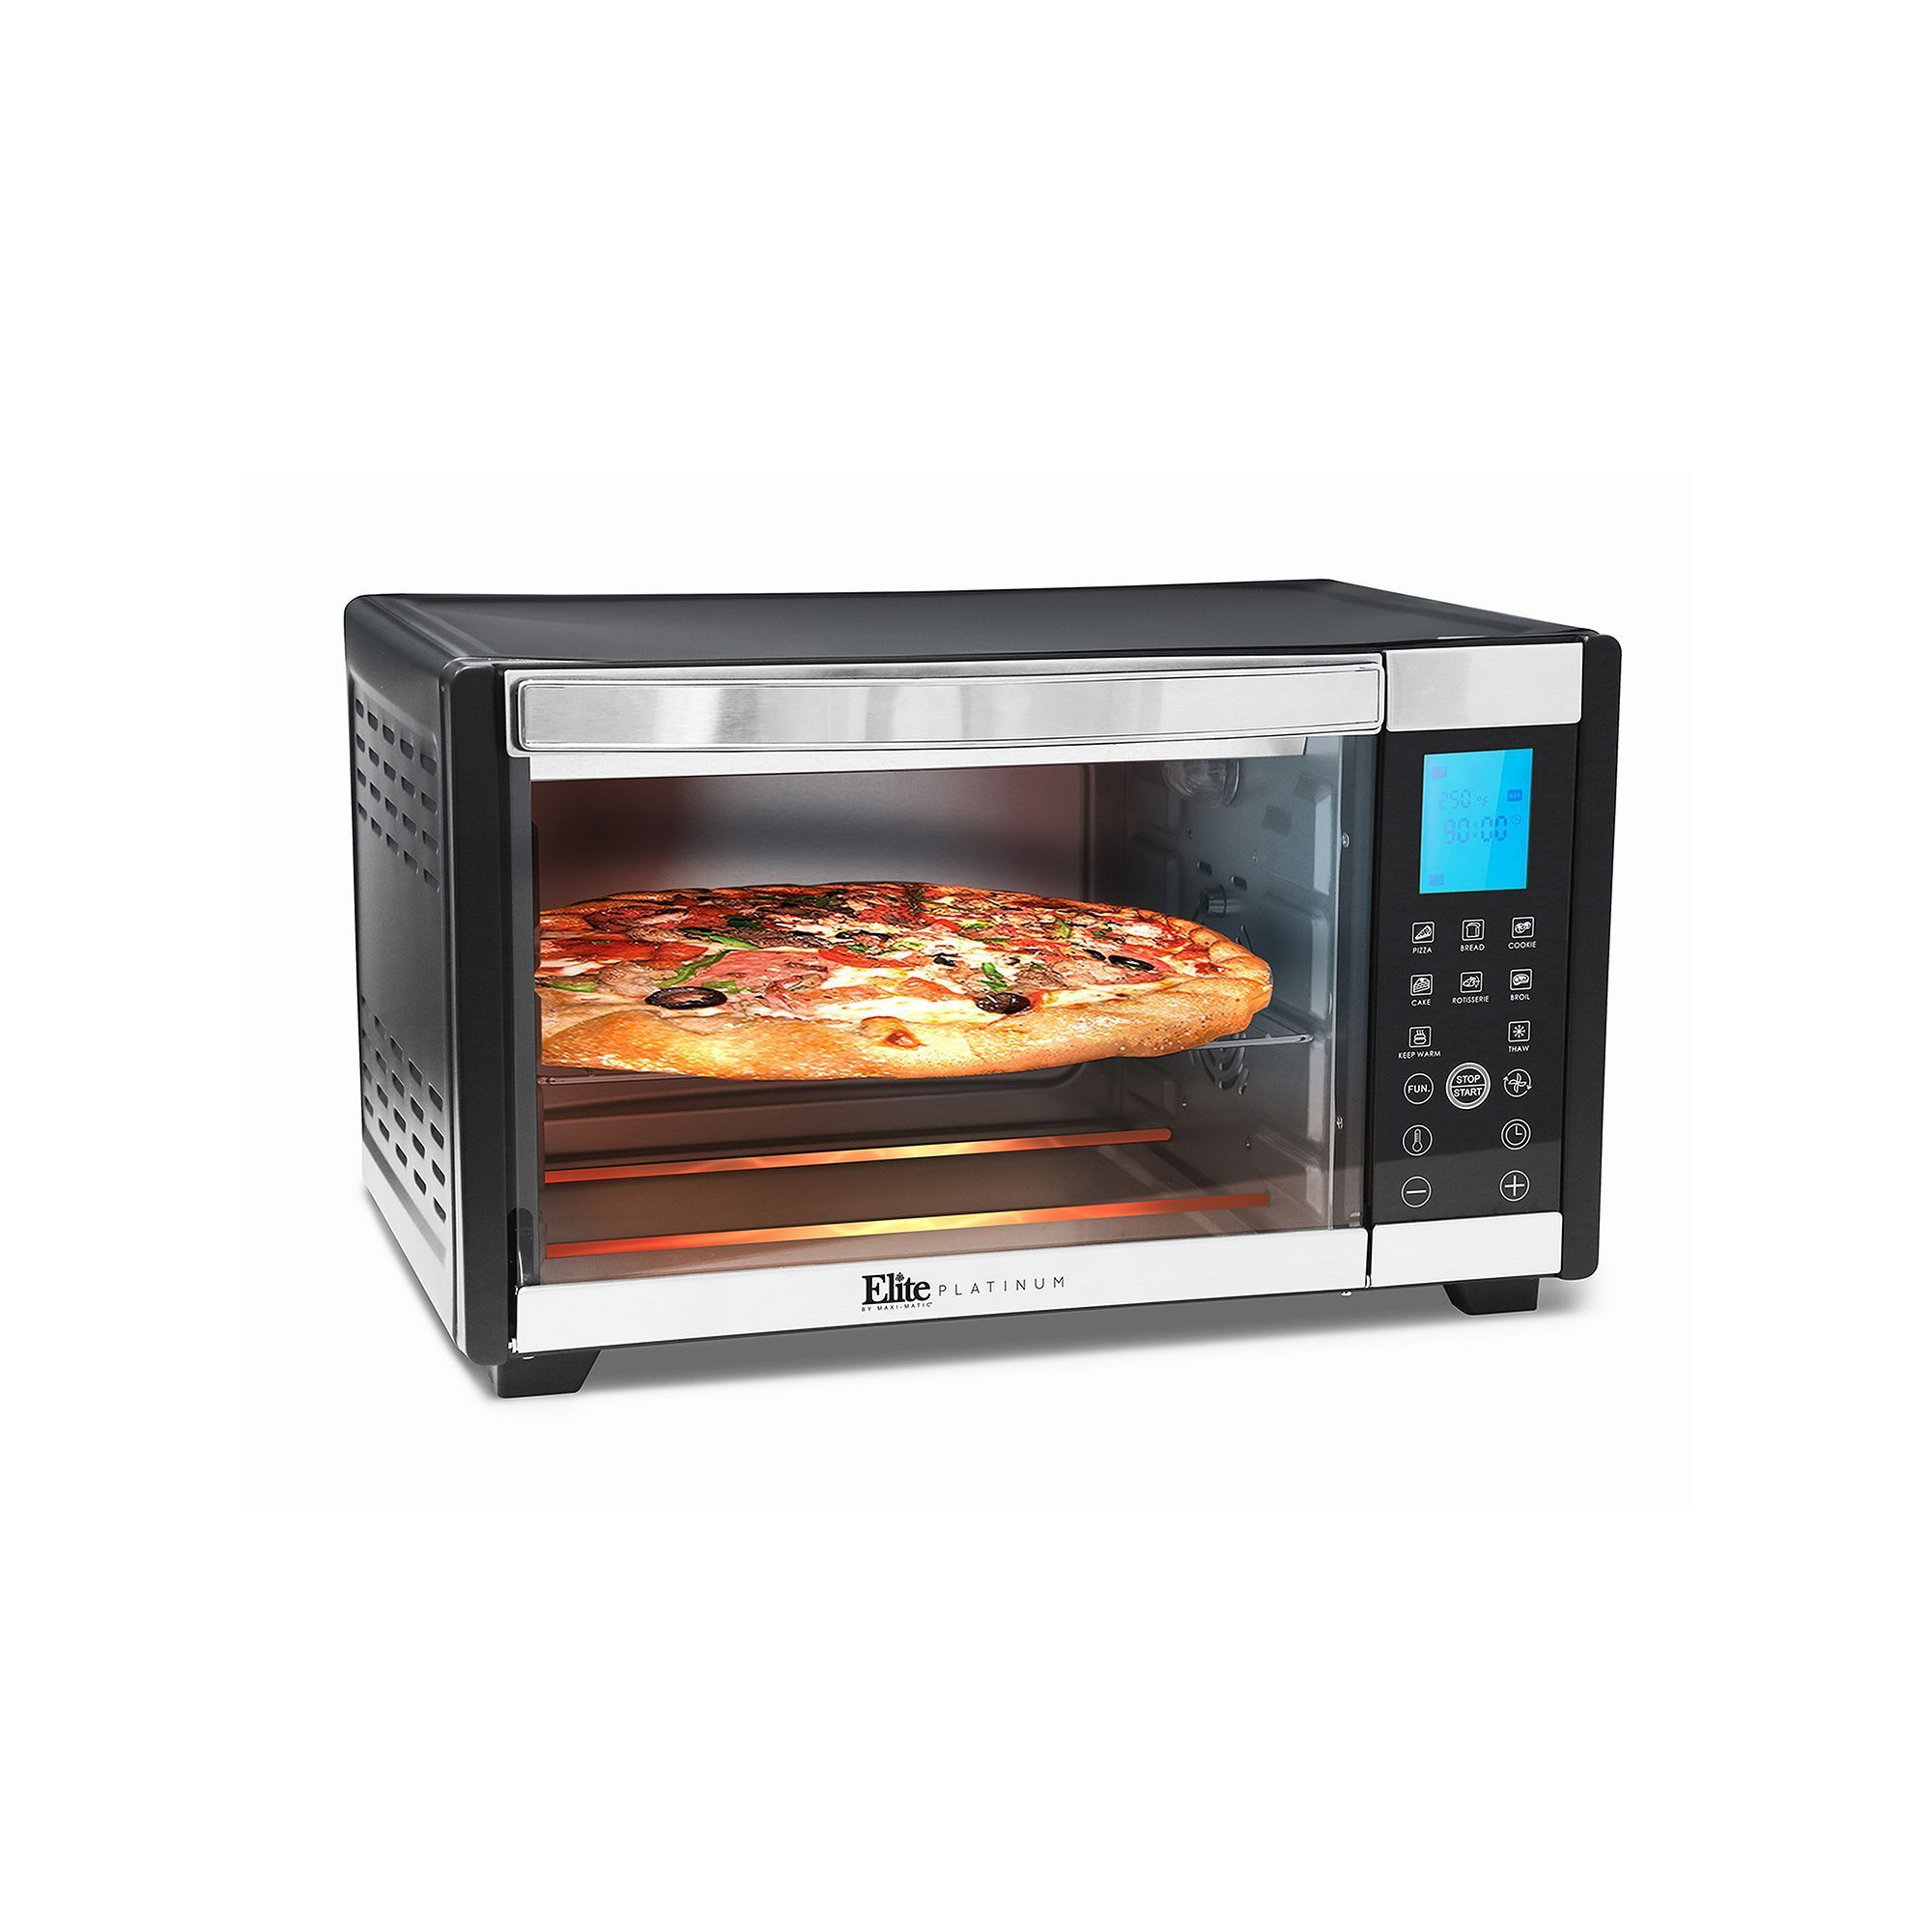 pro beyond hei bed bath reg smart qlt oven wid store breville toaster product convection